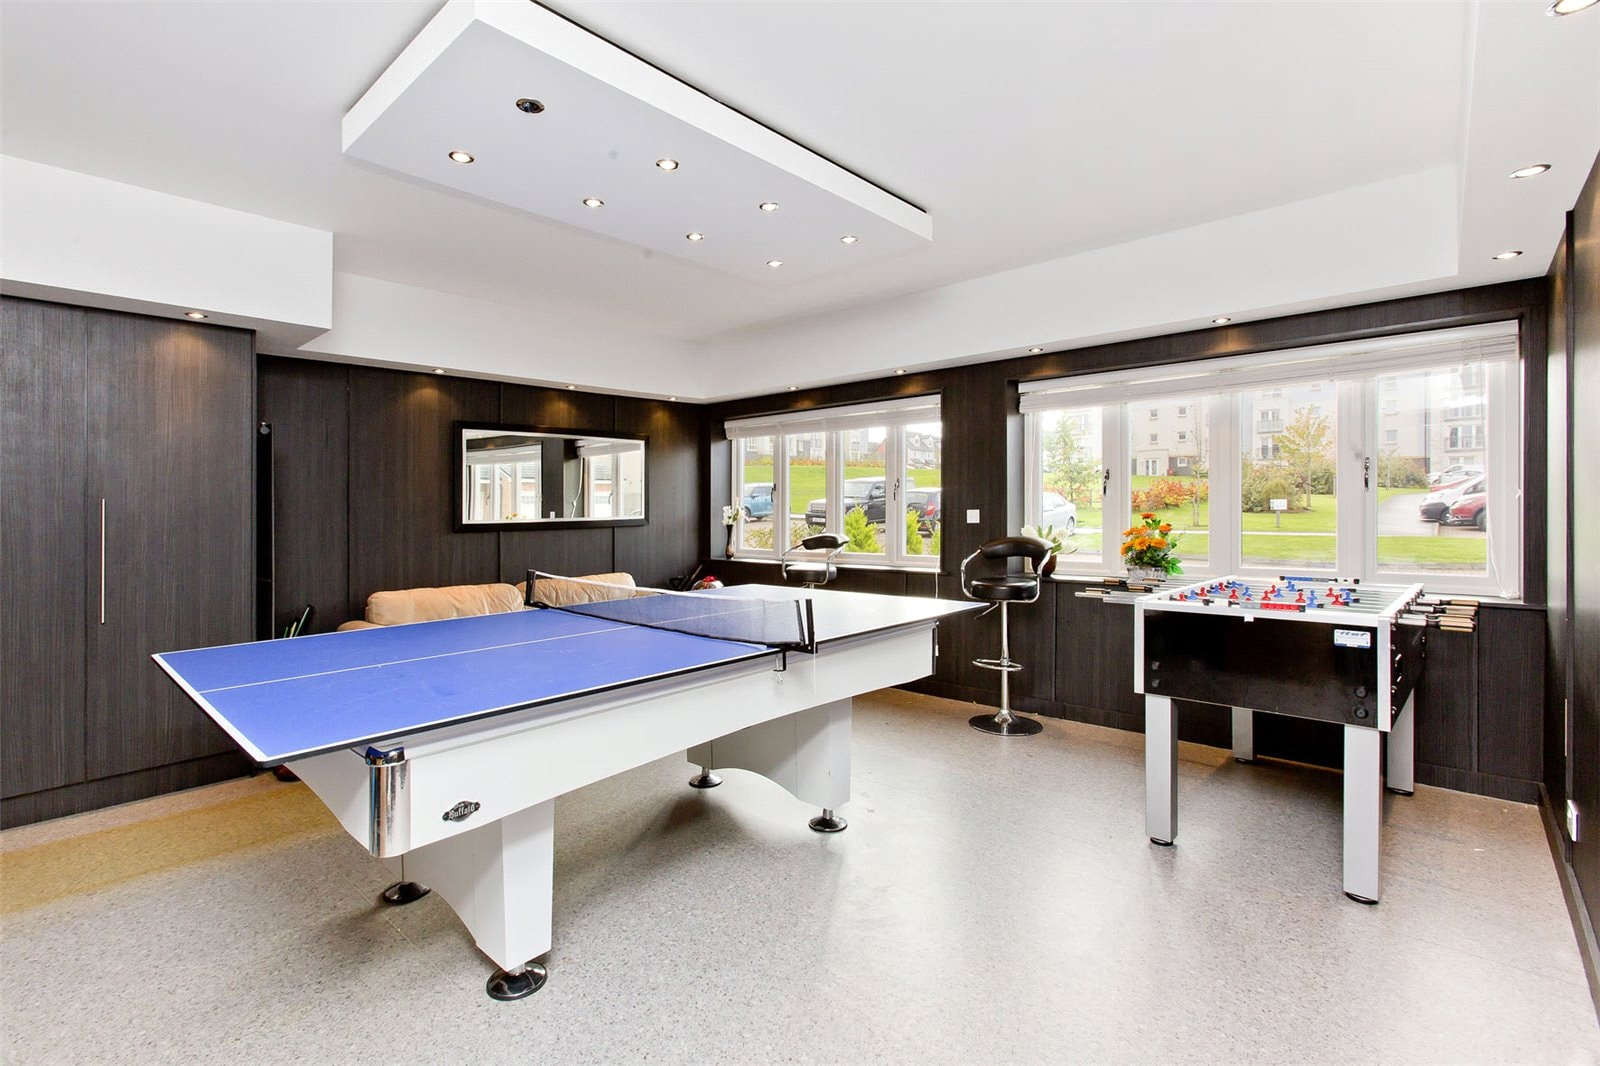 games room image